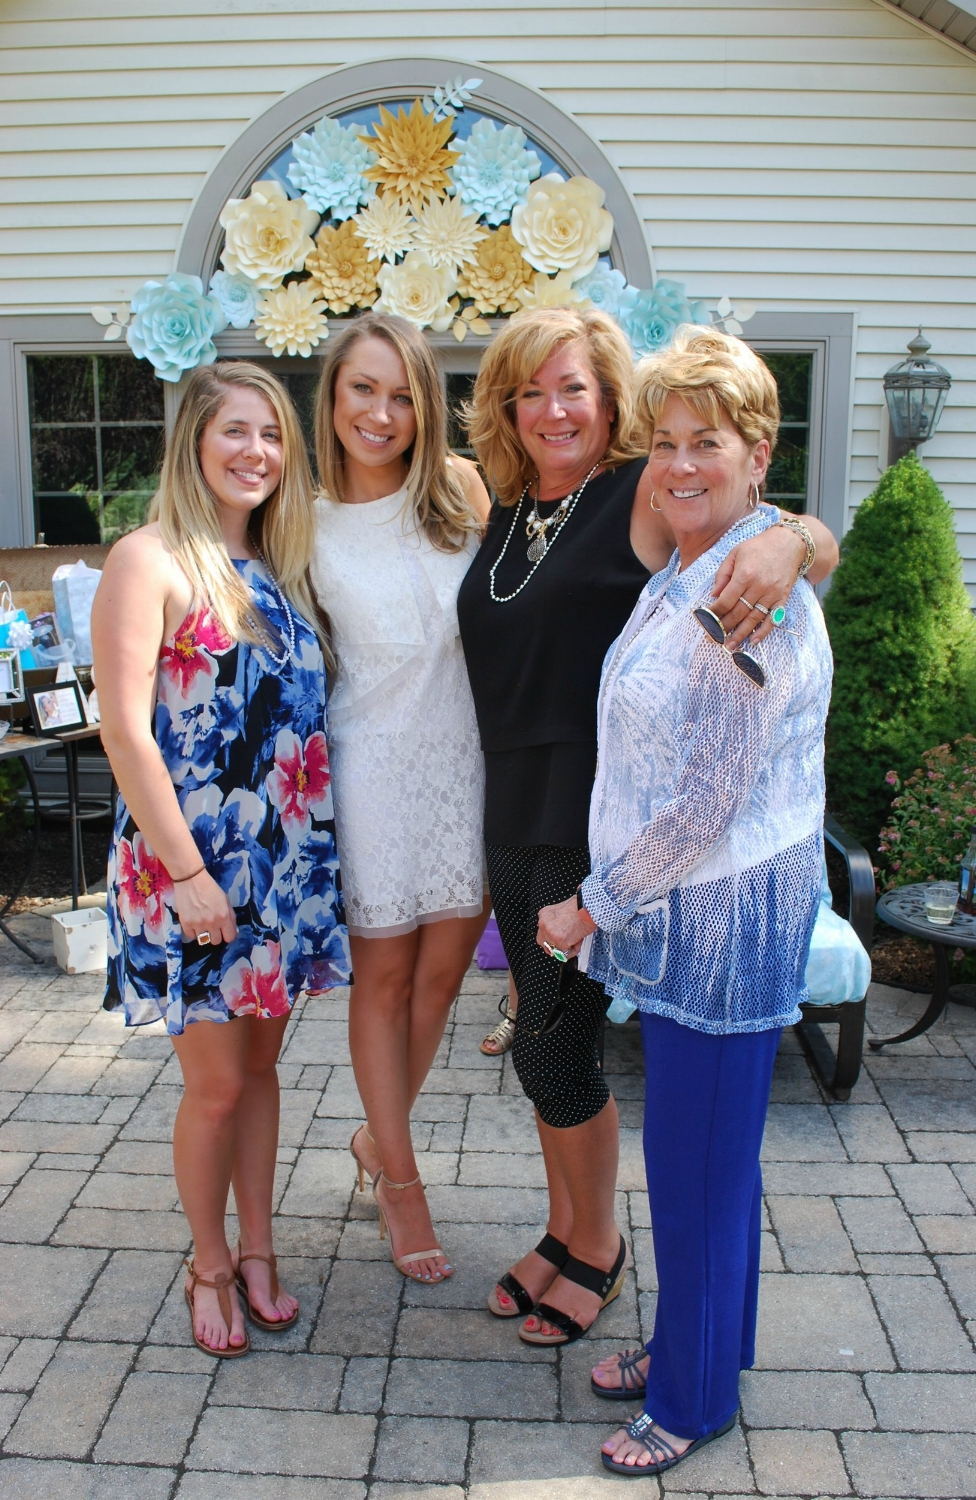 Brielle's in-laws-to-be came from Pennsylvania to shower her with love. Candace married Andrew, Alex's brother, on May 6th. This was Kristin's second celebration at the Hunt home and Mimi's first. They are such fun people we know this is only the beginning of many to come.